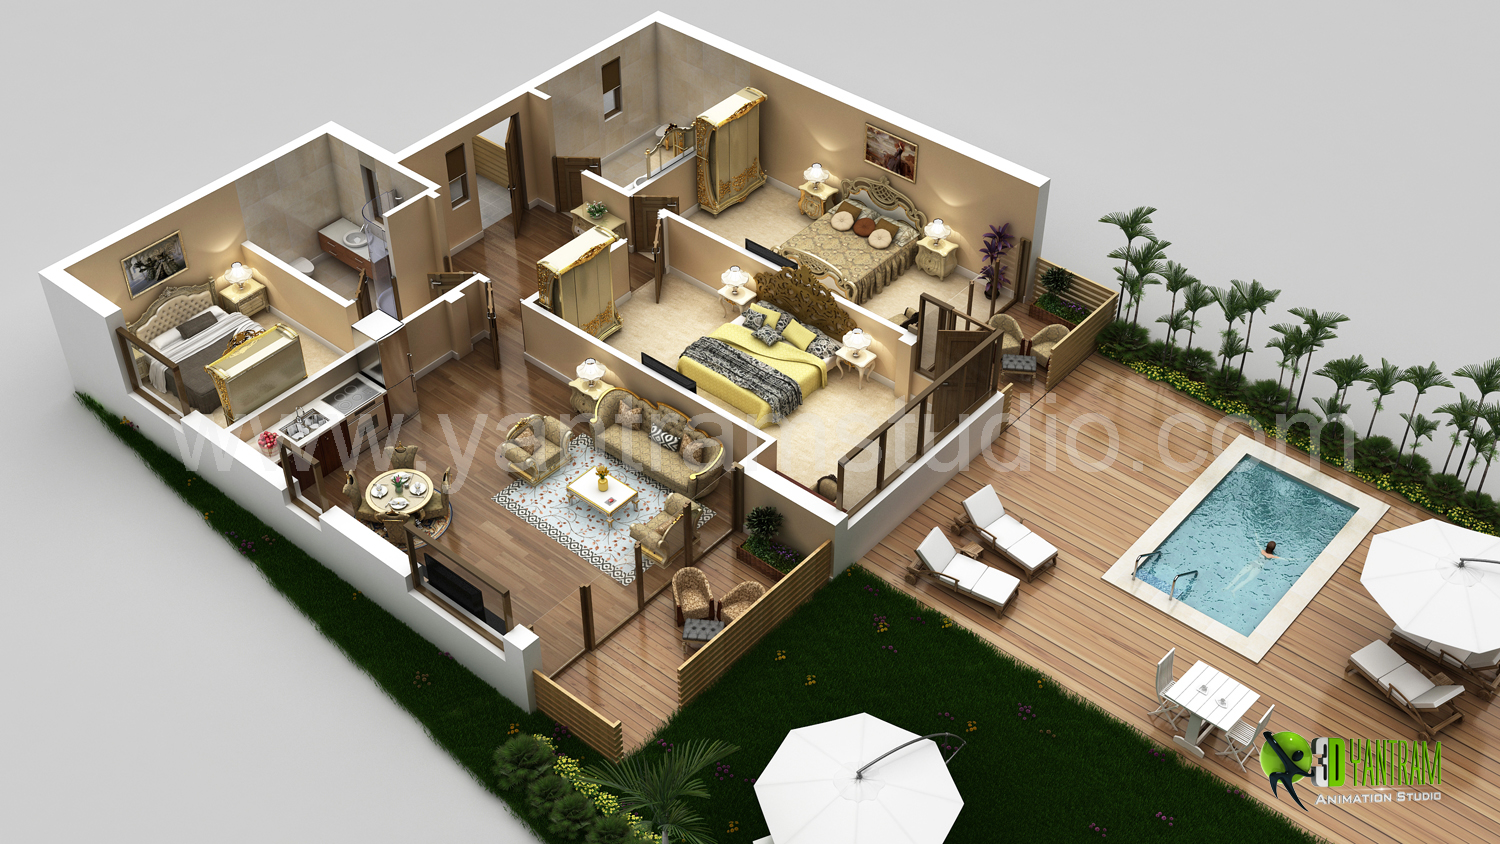 floor plan design. 3D Floor Plan Designs | YantramStudio Yantram Animation Studio Archello Design